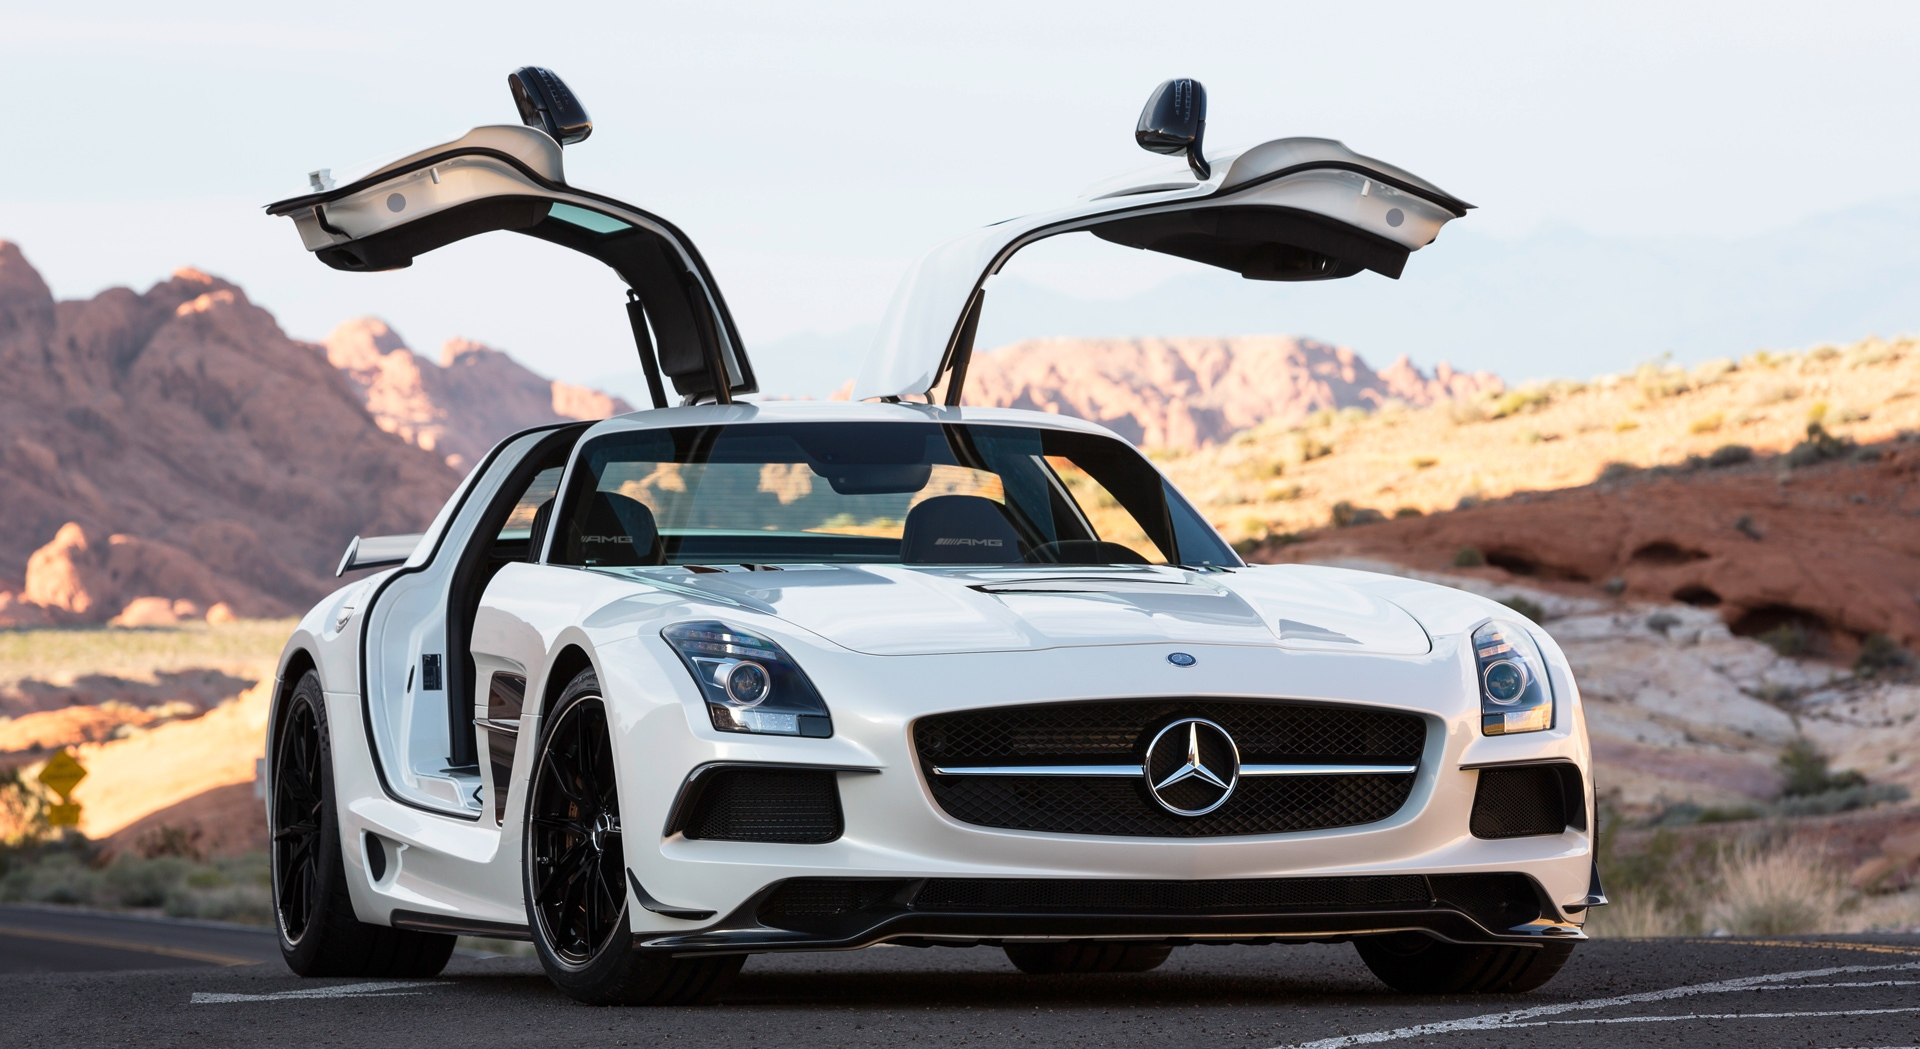 Mercedes benz sls amg wings hd desktop wallpapers 4k hd for 2015 mercedes benz sls amg